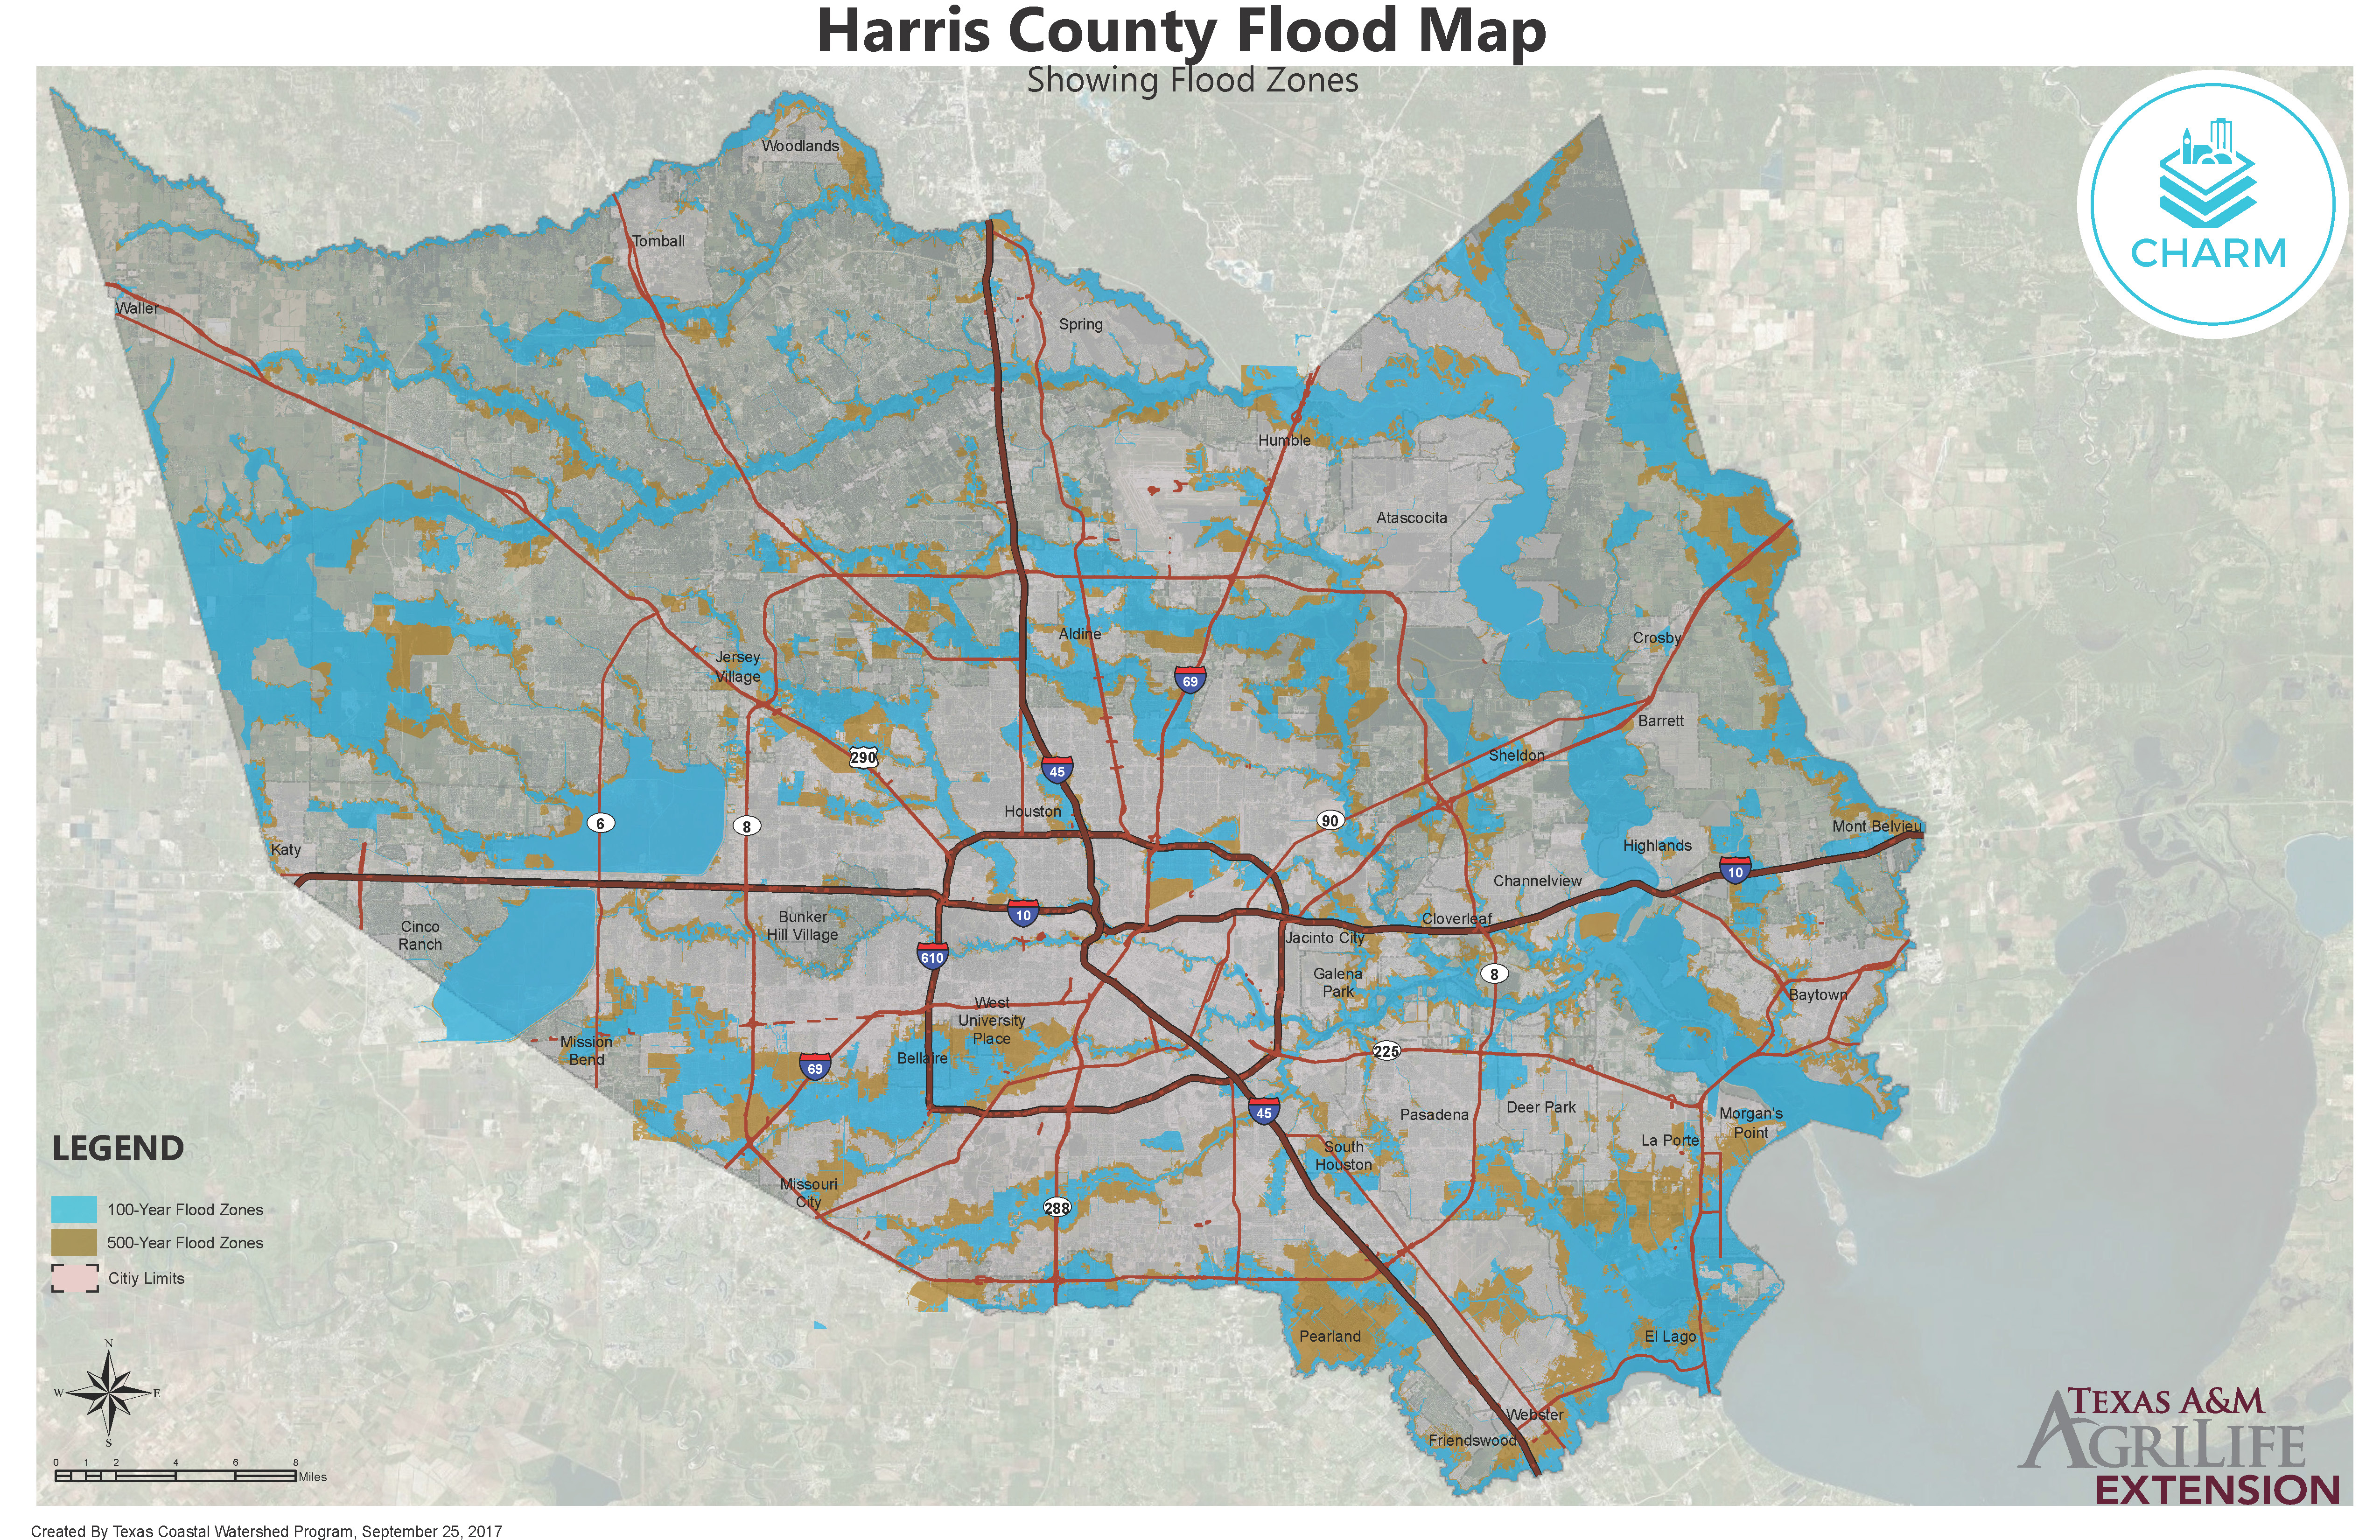 Flood Zone Maps For Coastal Counties | Texas Community Watershed - Houston Texas Flood Map